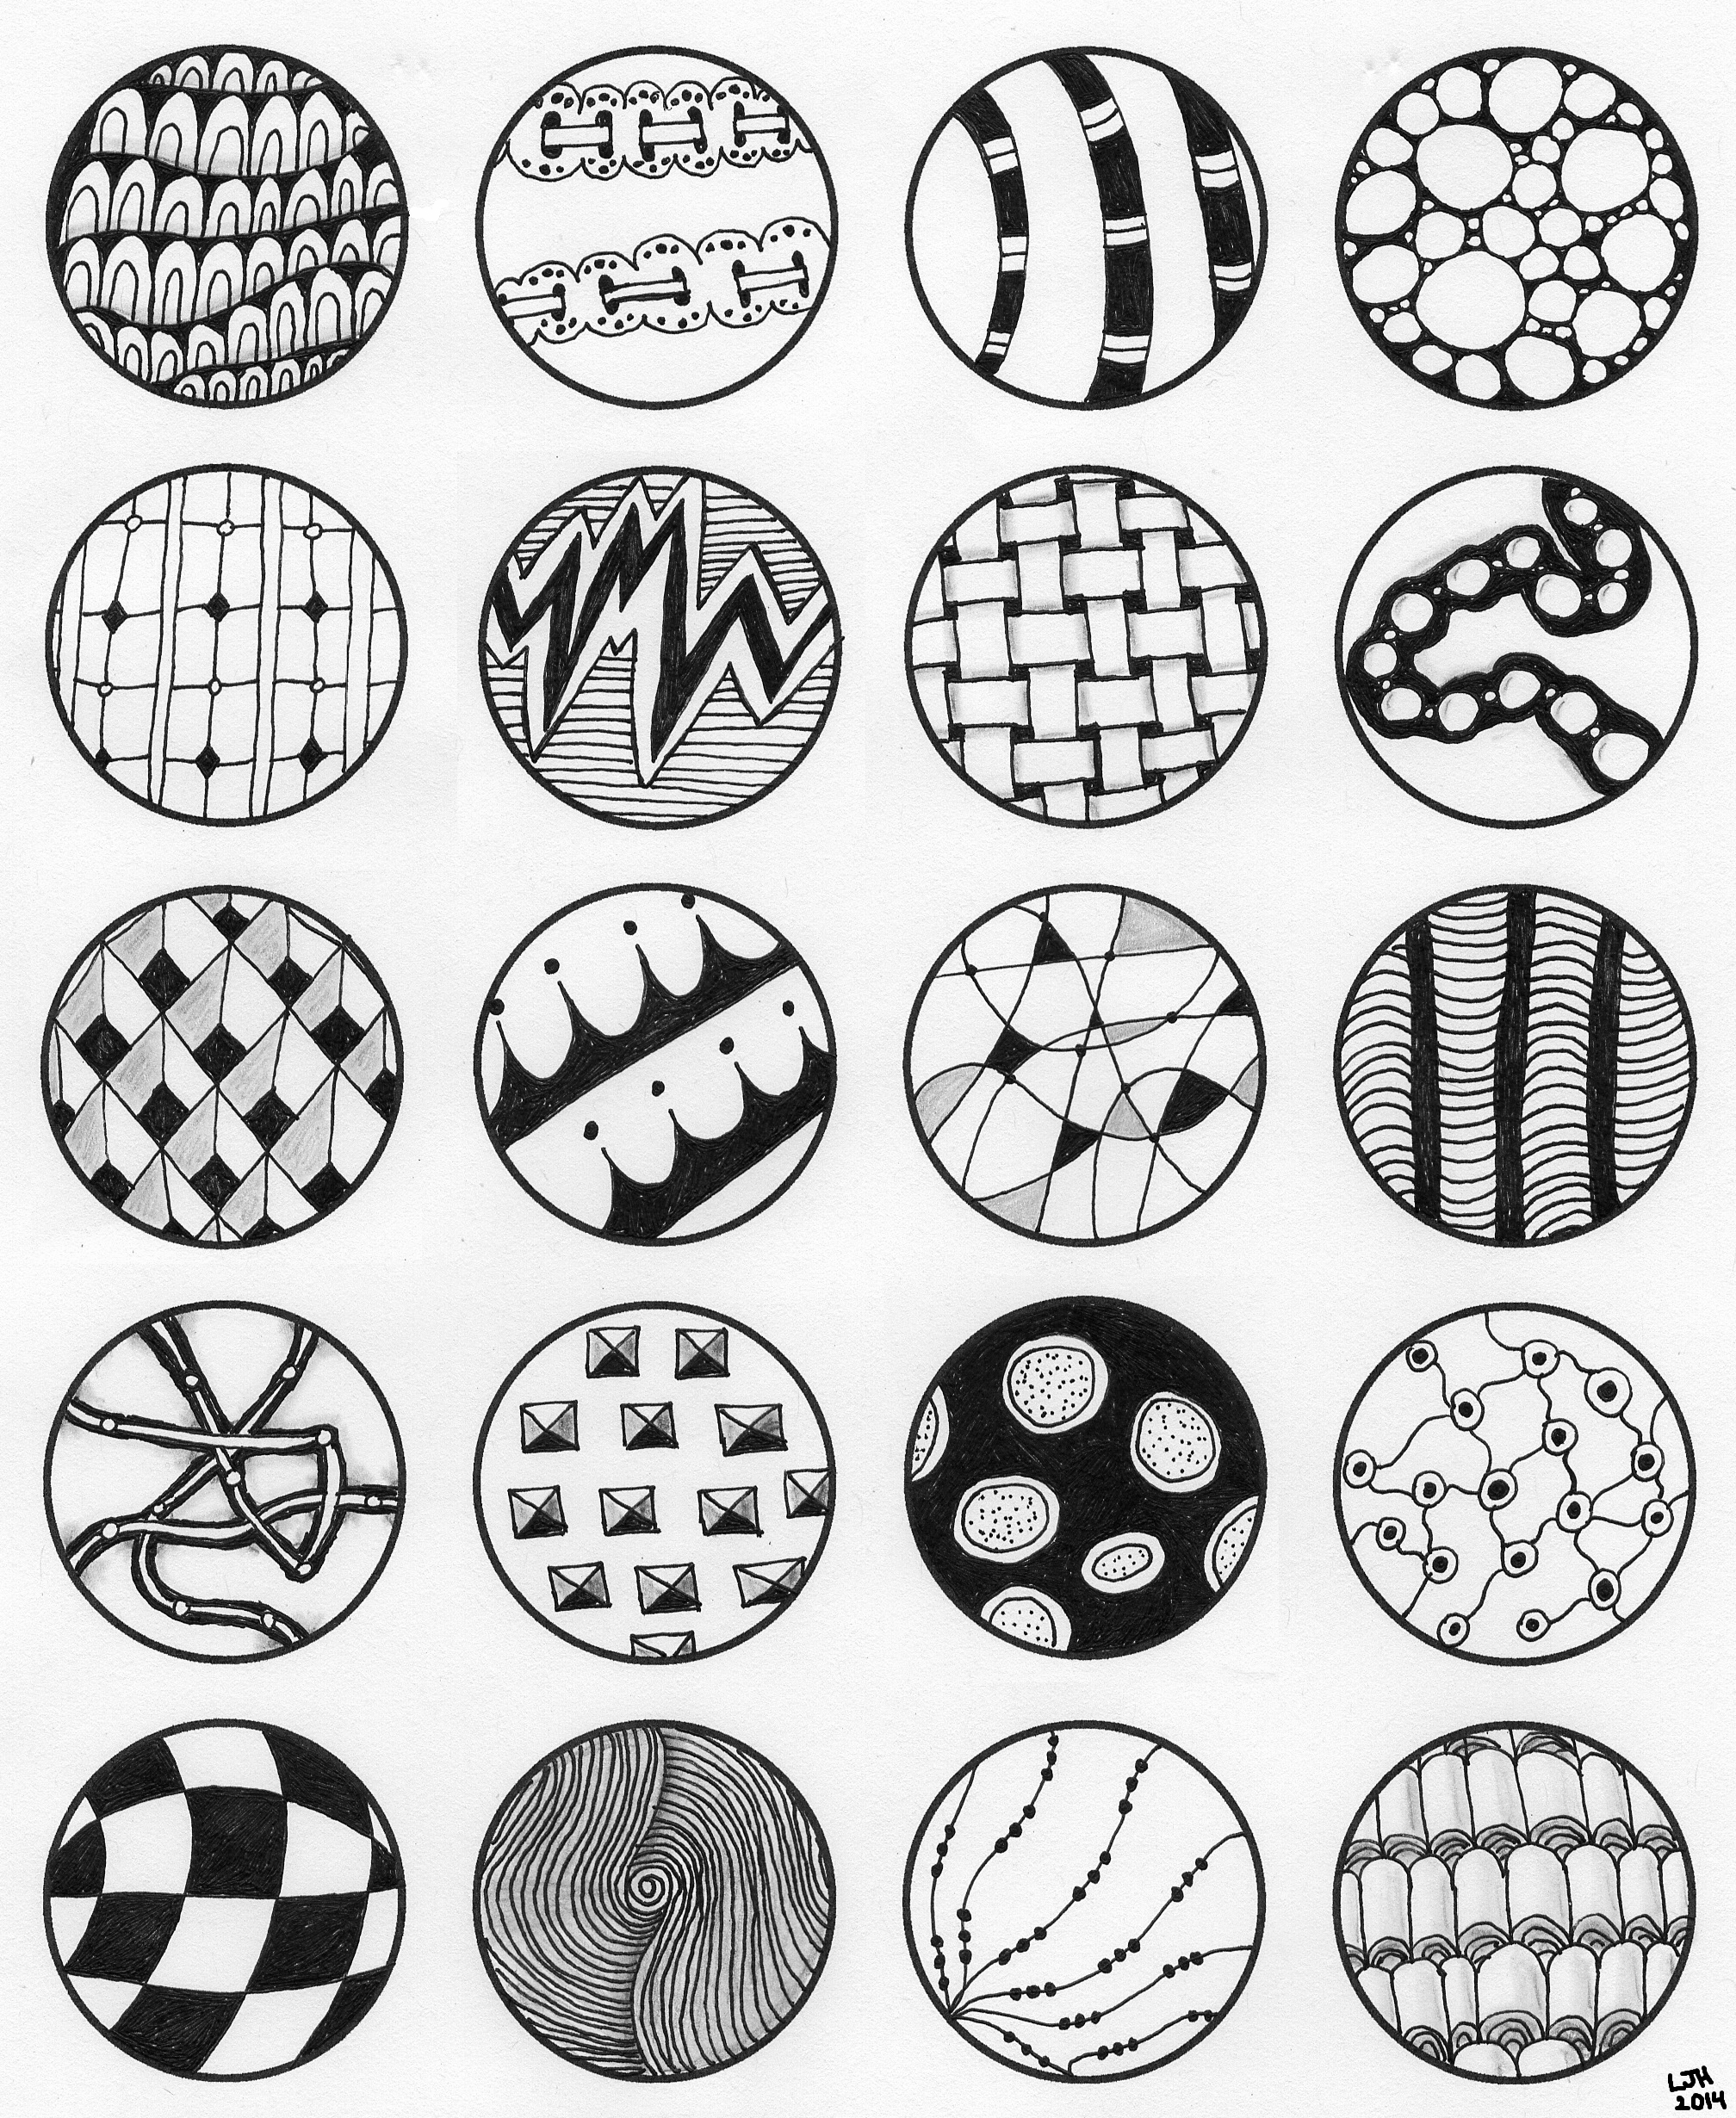 Easy Zentangle Patterns In Circles on Circle Worksheets Free